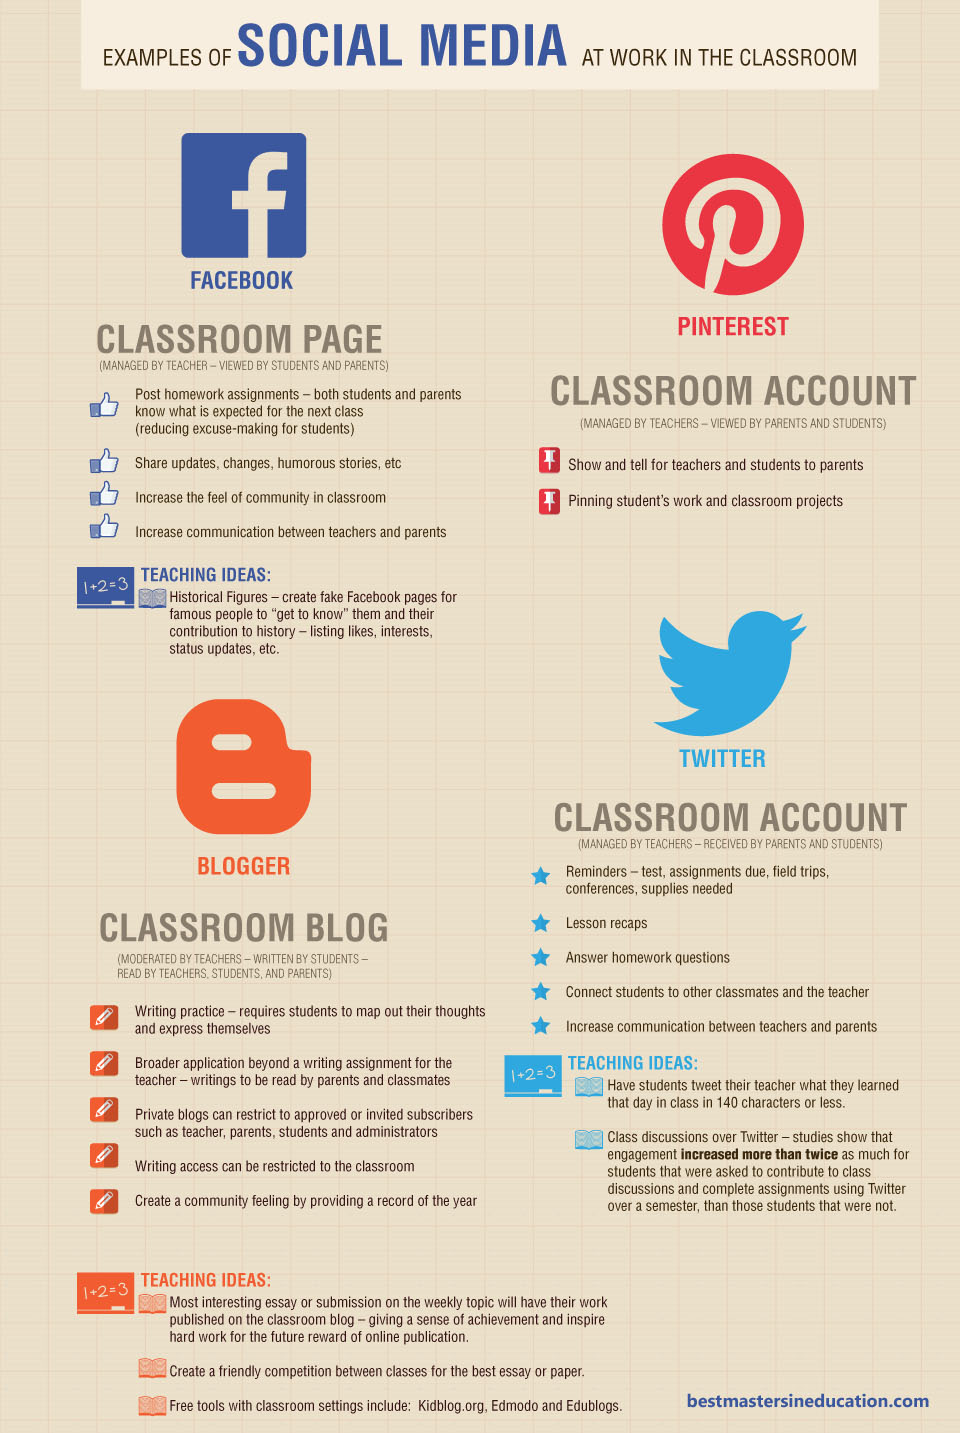 Teachthought Wp Content Uploads 2013 08 Examples Of Social Media In The Classroom Ideas Cred